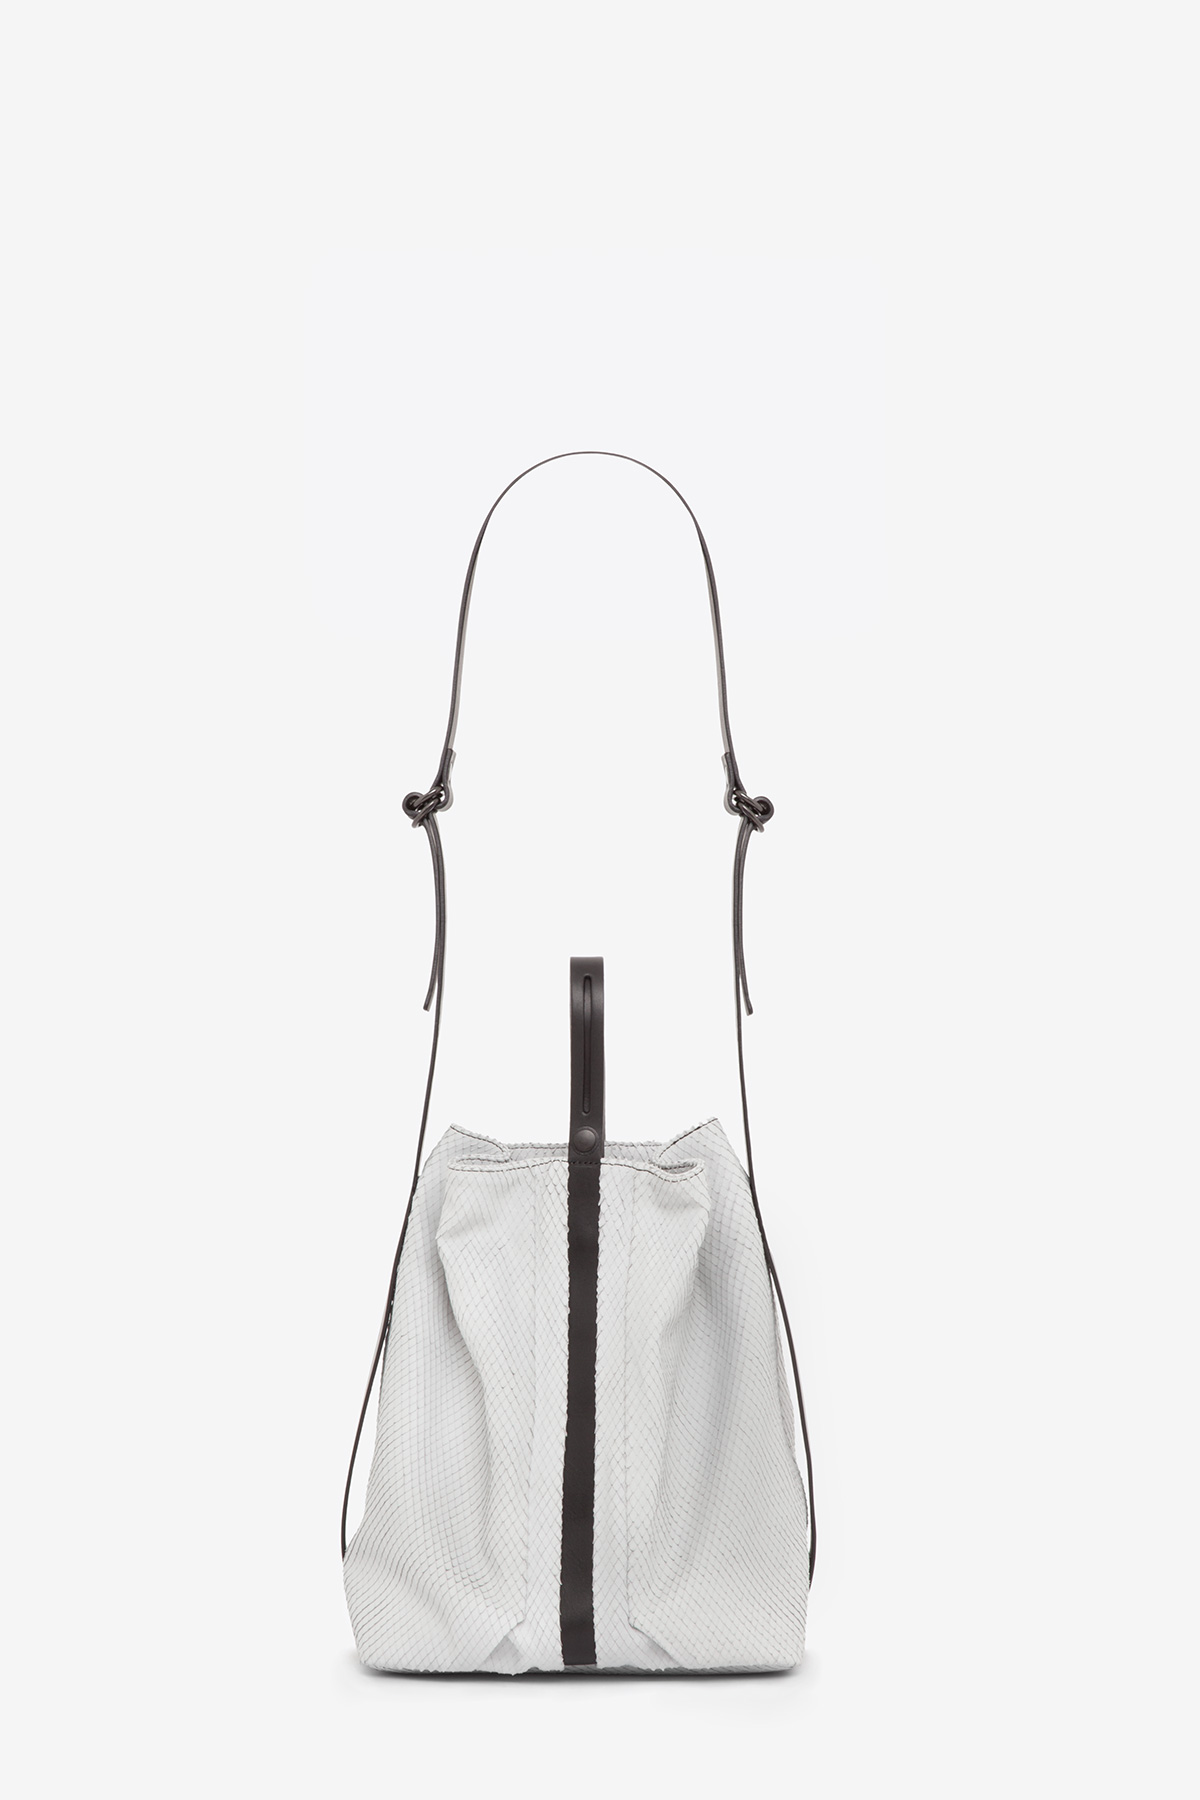 dclr010-bucketbag-a22-backsnakefoggrey-back